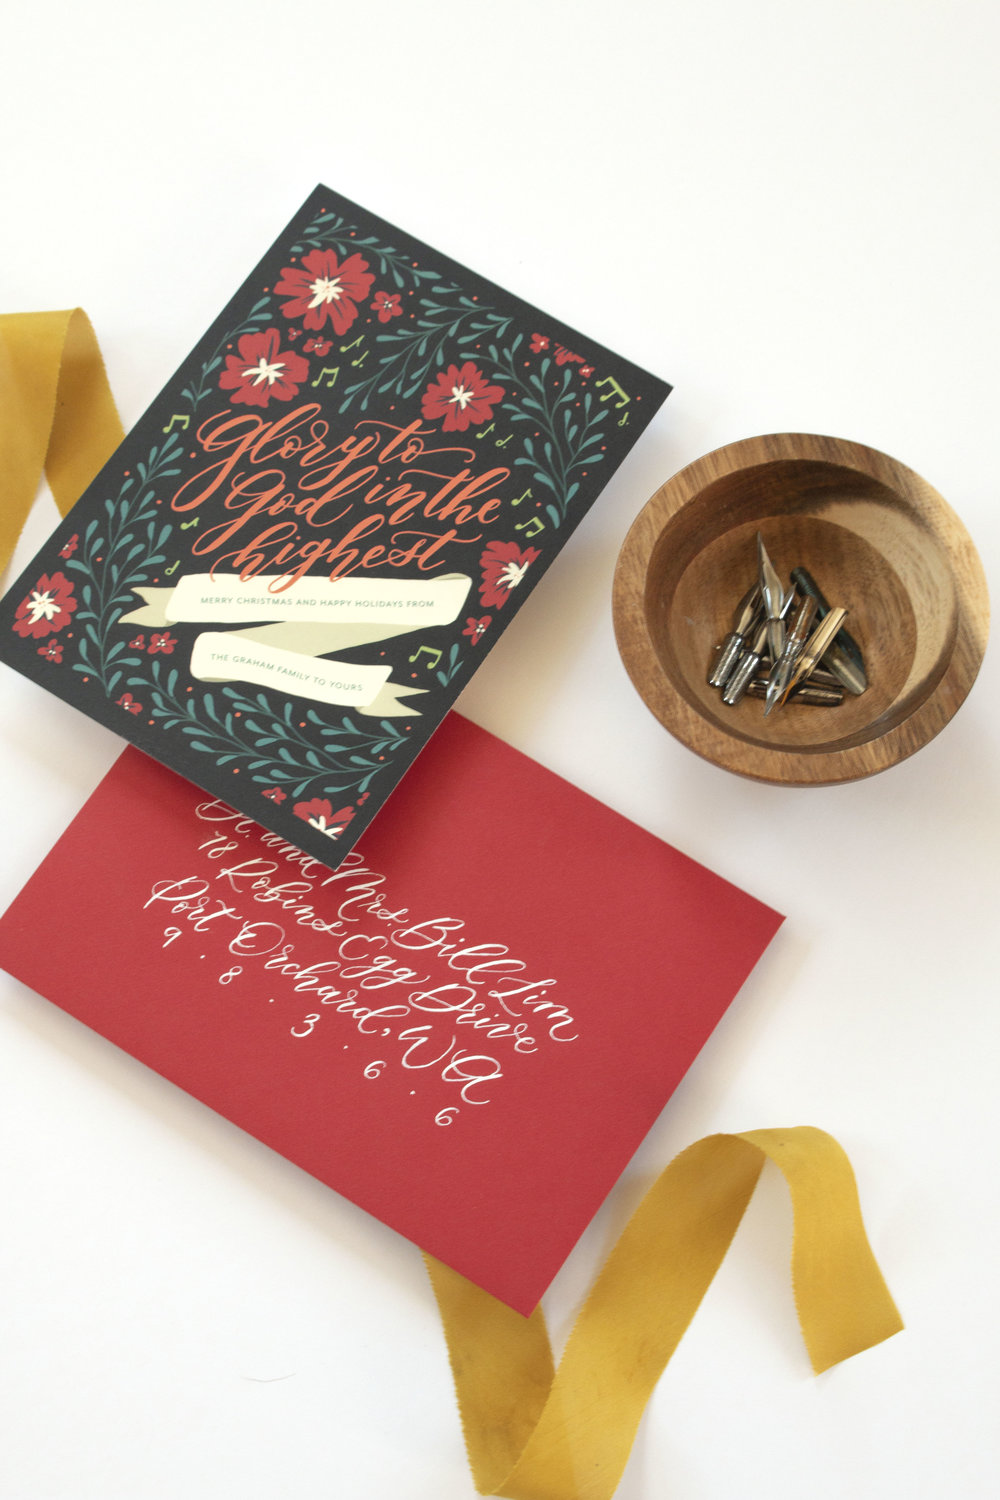 Glory to God in the Highest Illustrated Calligraphy Christmas Card by Caitlin O'Bryant Design